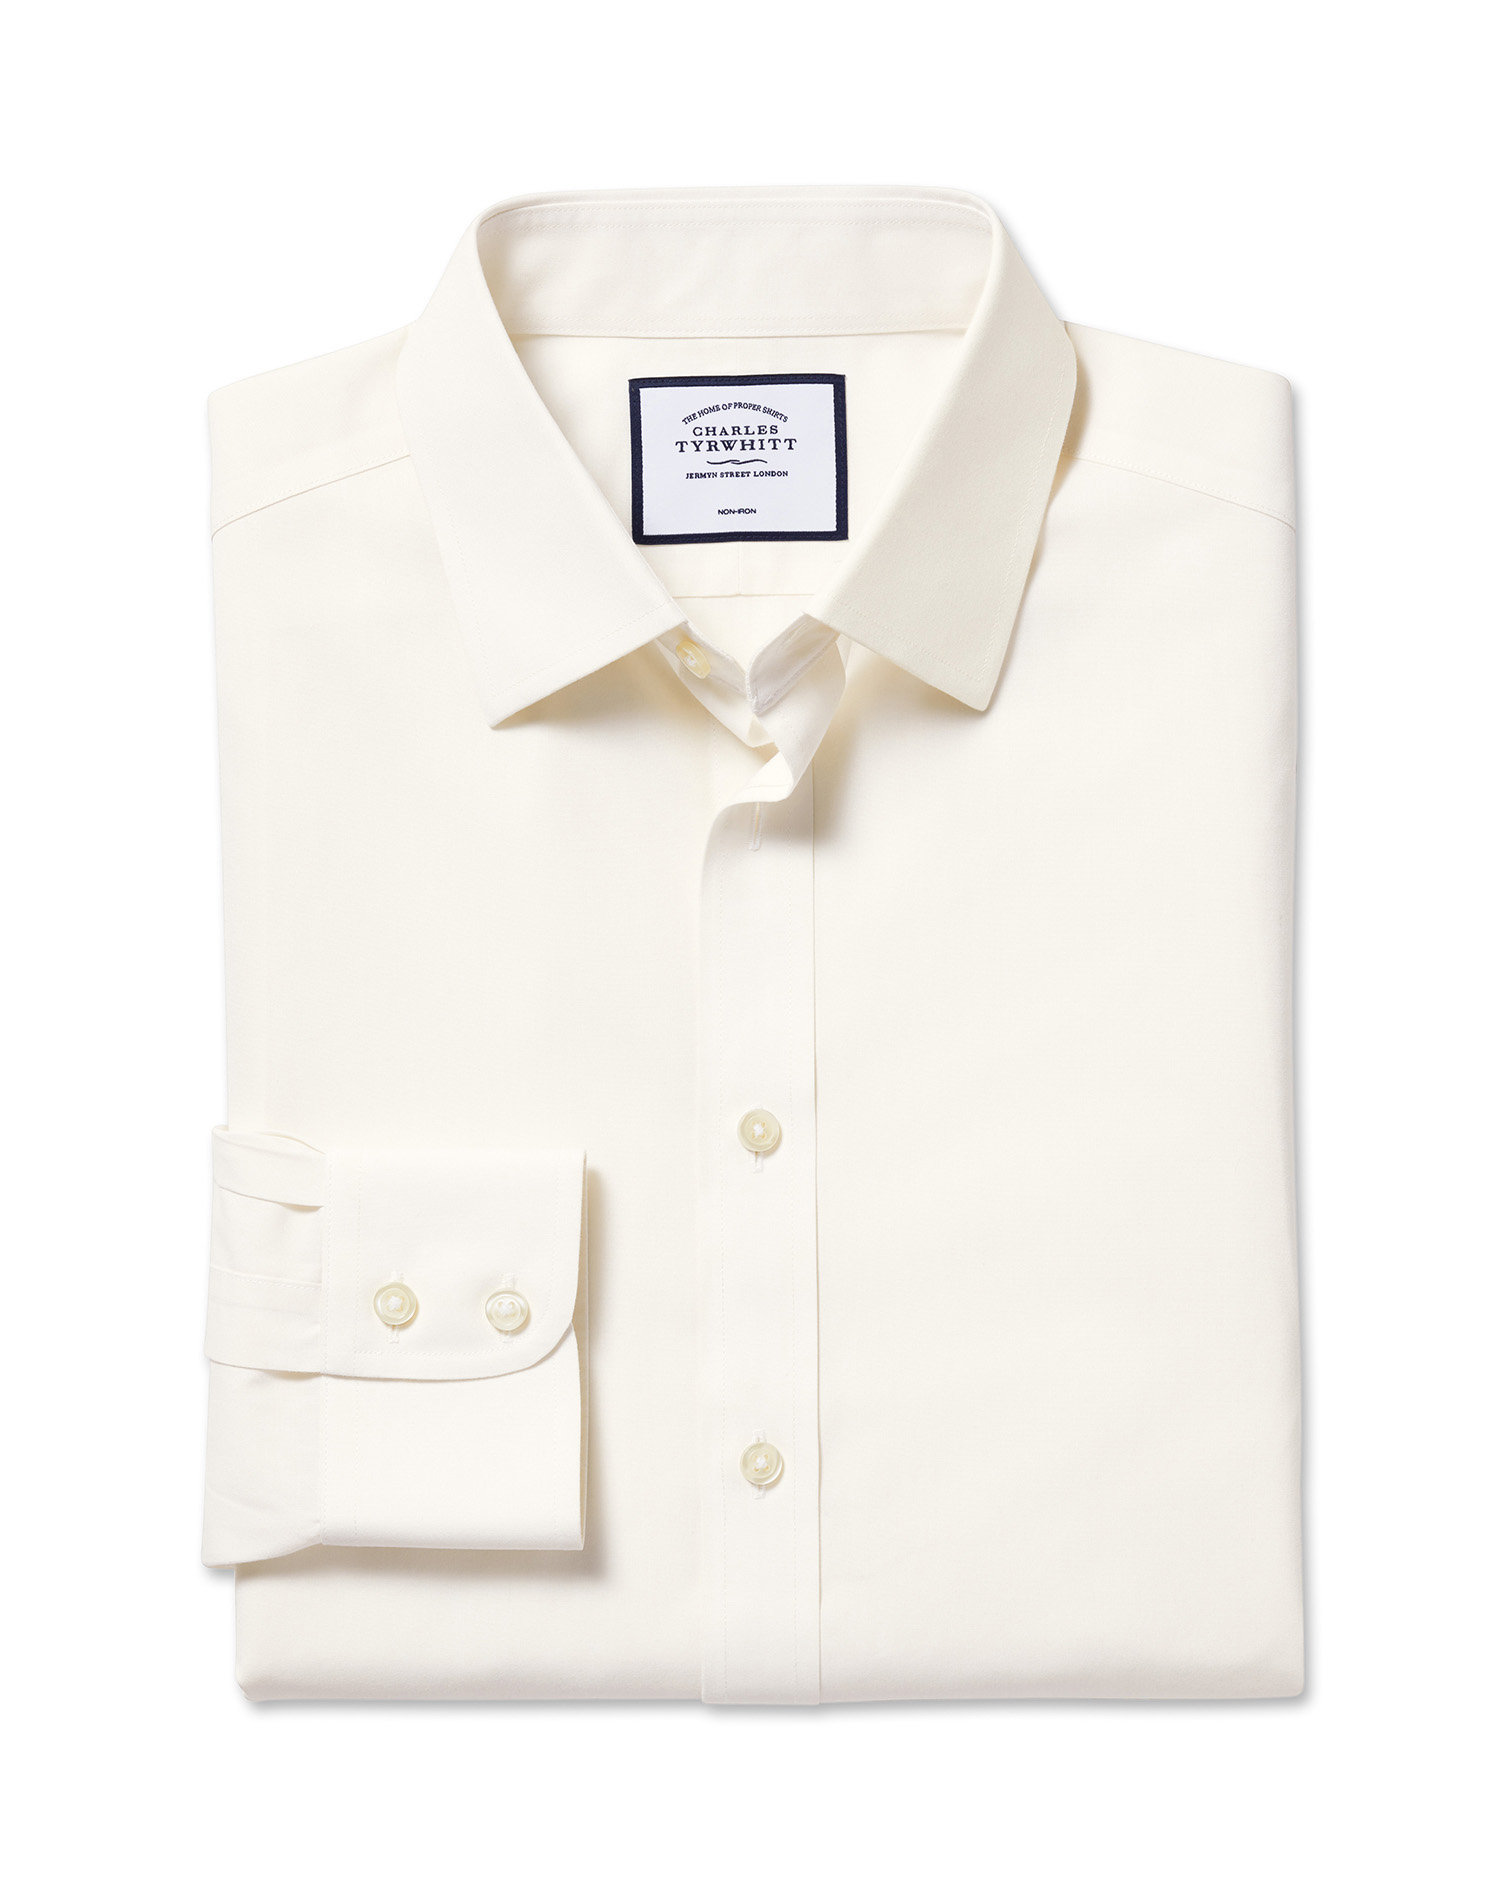 Slim Fit Cream Non-Iron Poplin Cotton Formal Shirt Single Cuff Size 16.5/36 by Charles Tyrwhitt